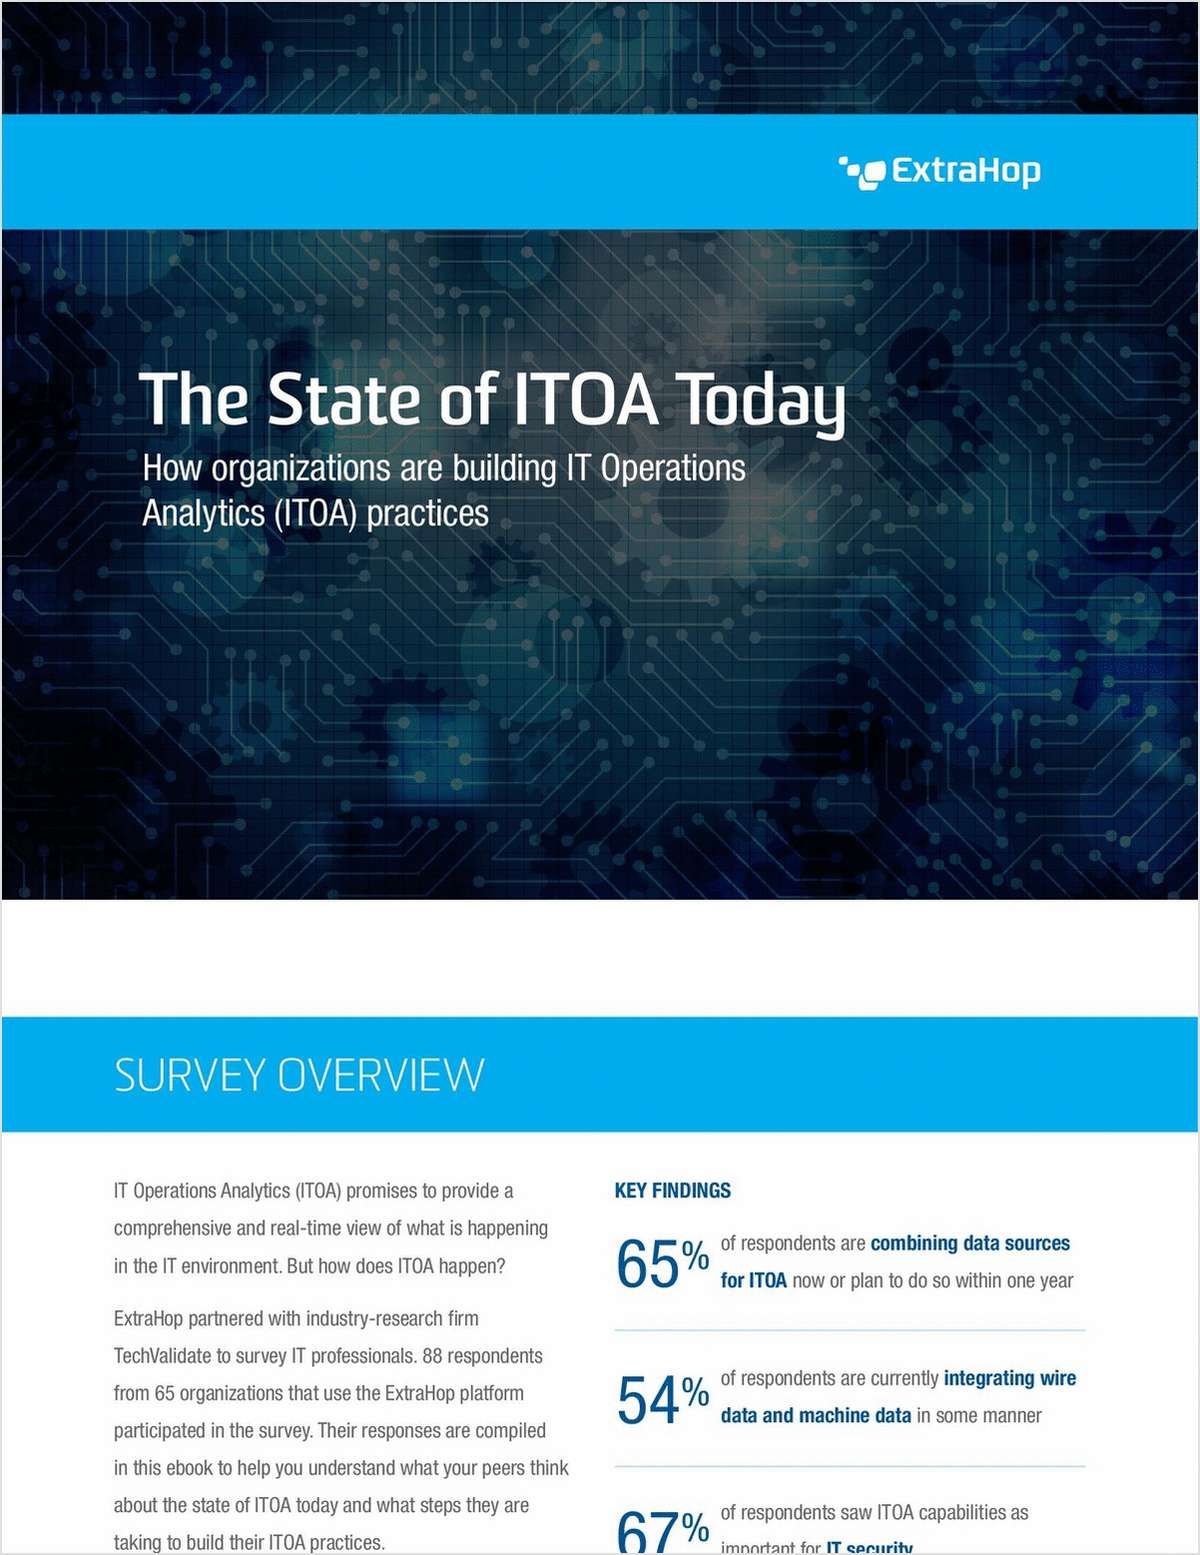 Survey Results: The State of ITOA Today